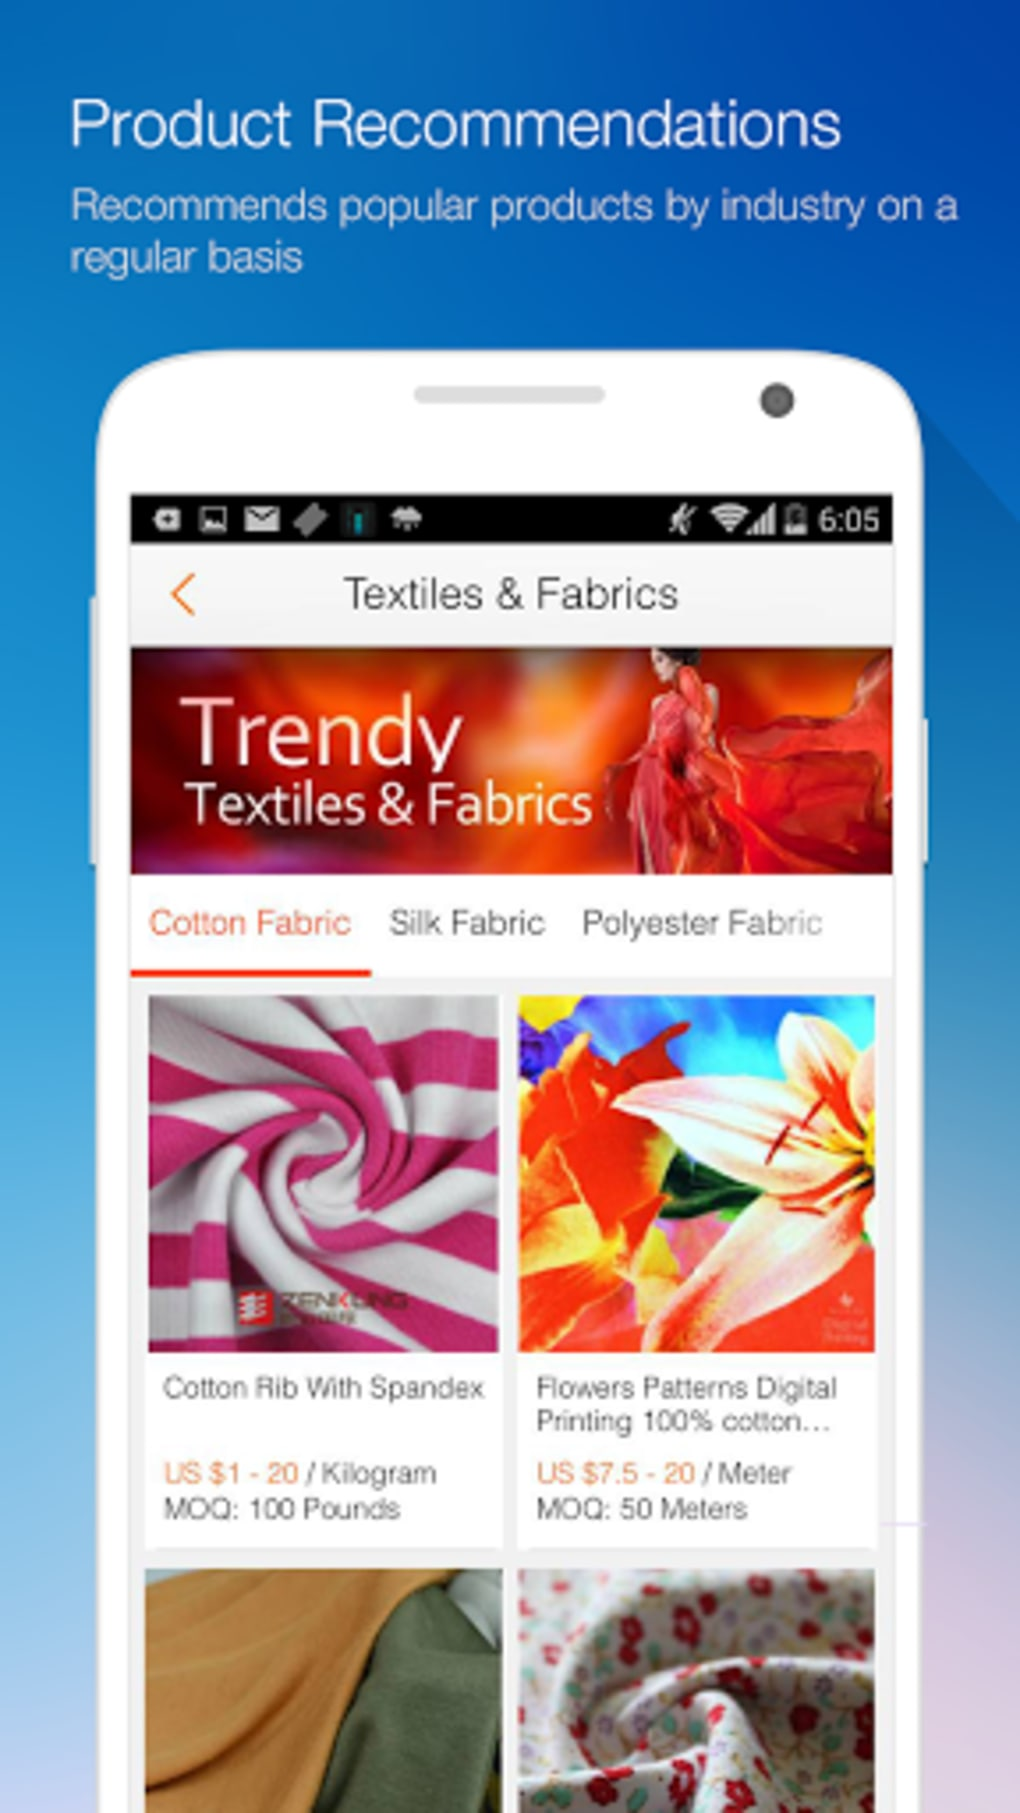 Alibaba Com Apk For Android Download By alibaba.com hong kong limited. alibaba com apk for android download